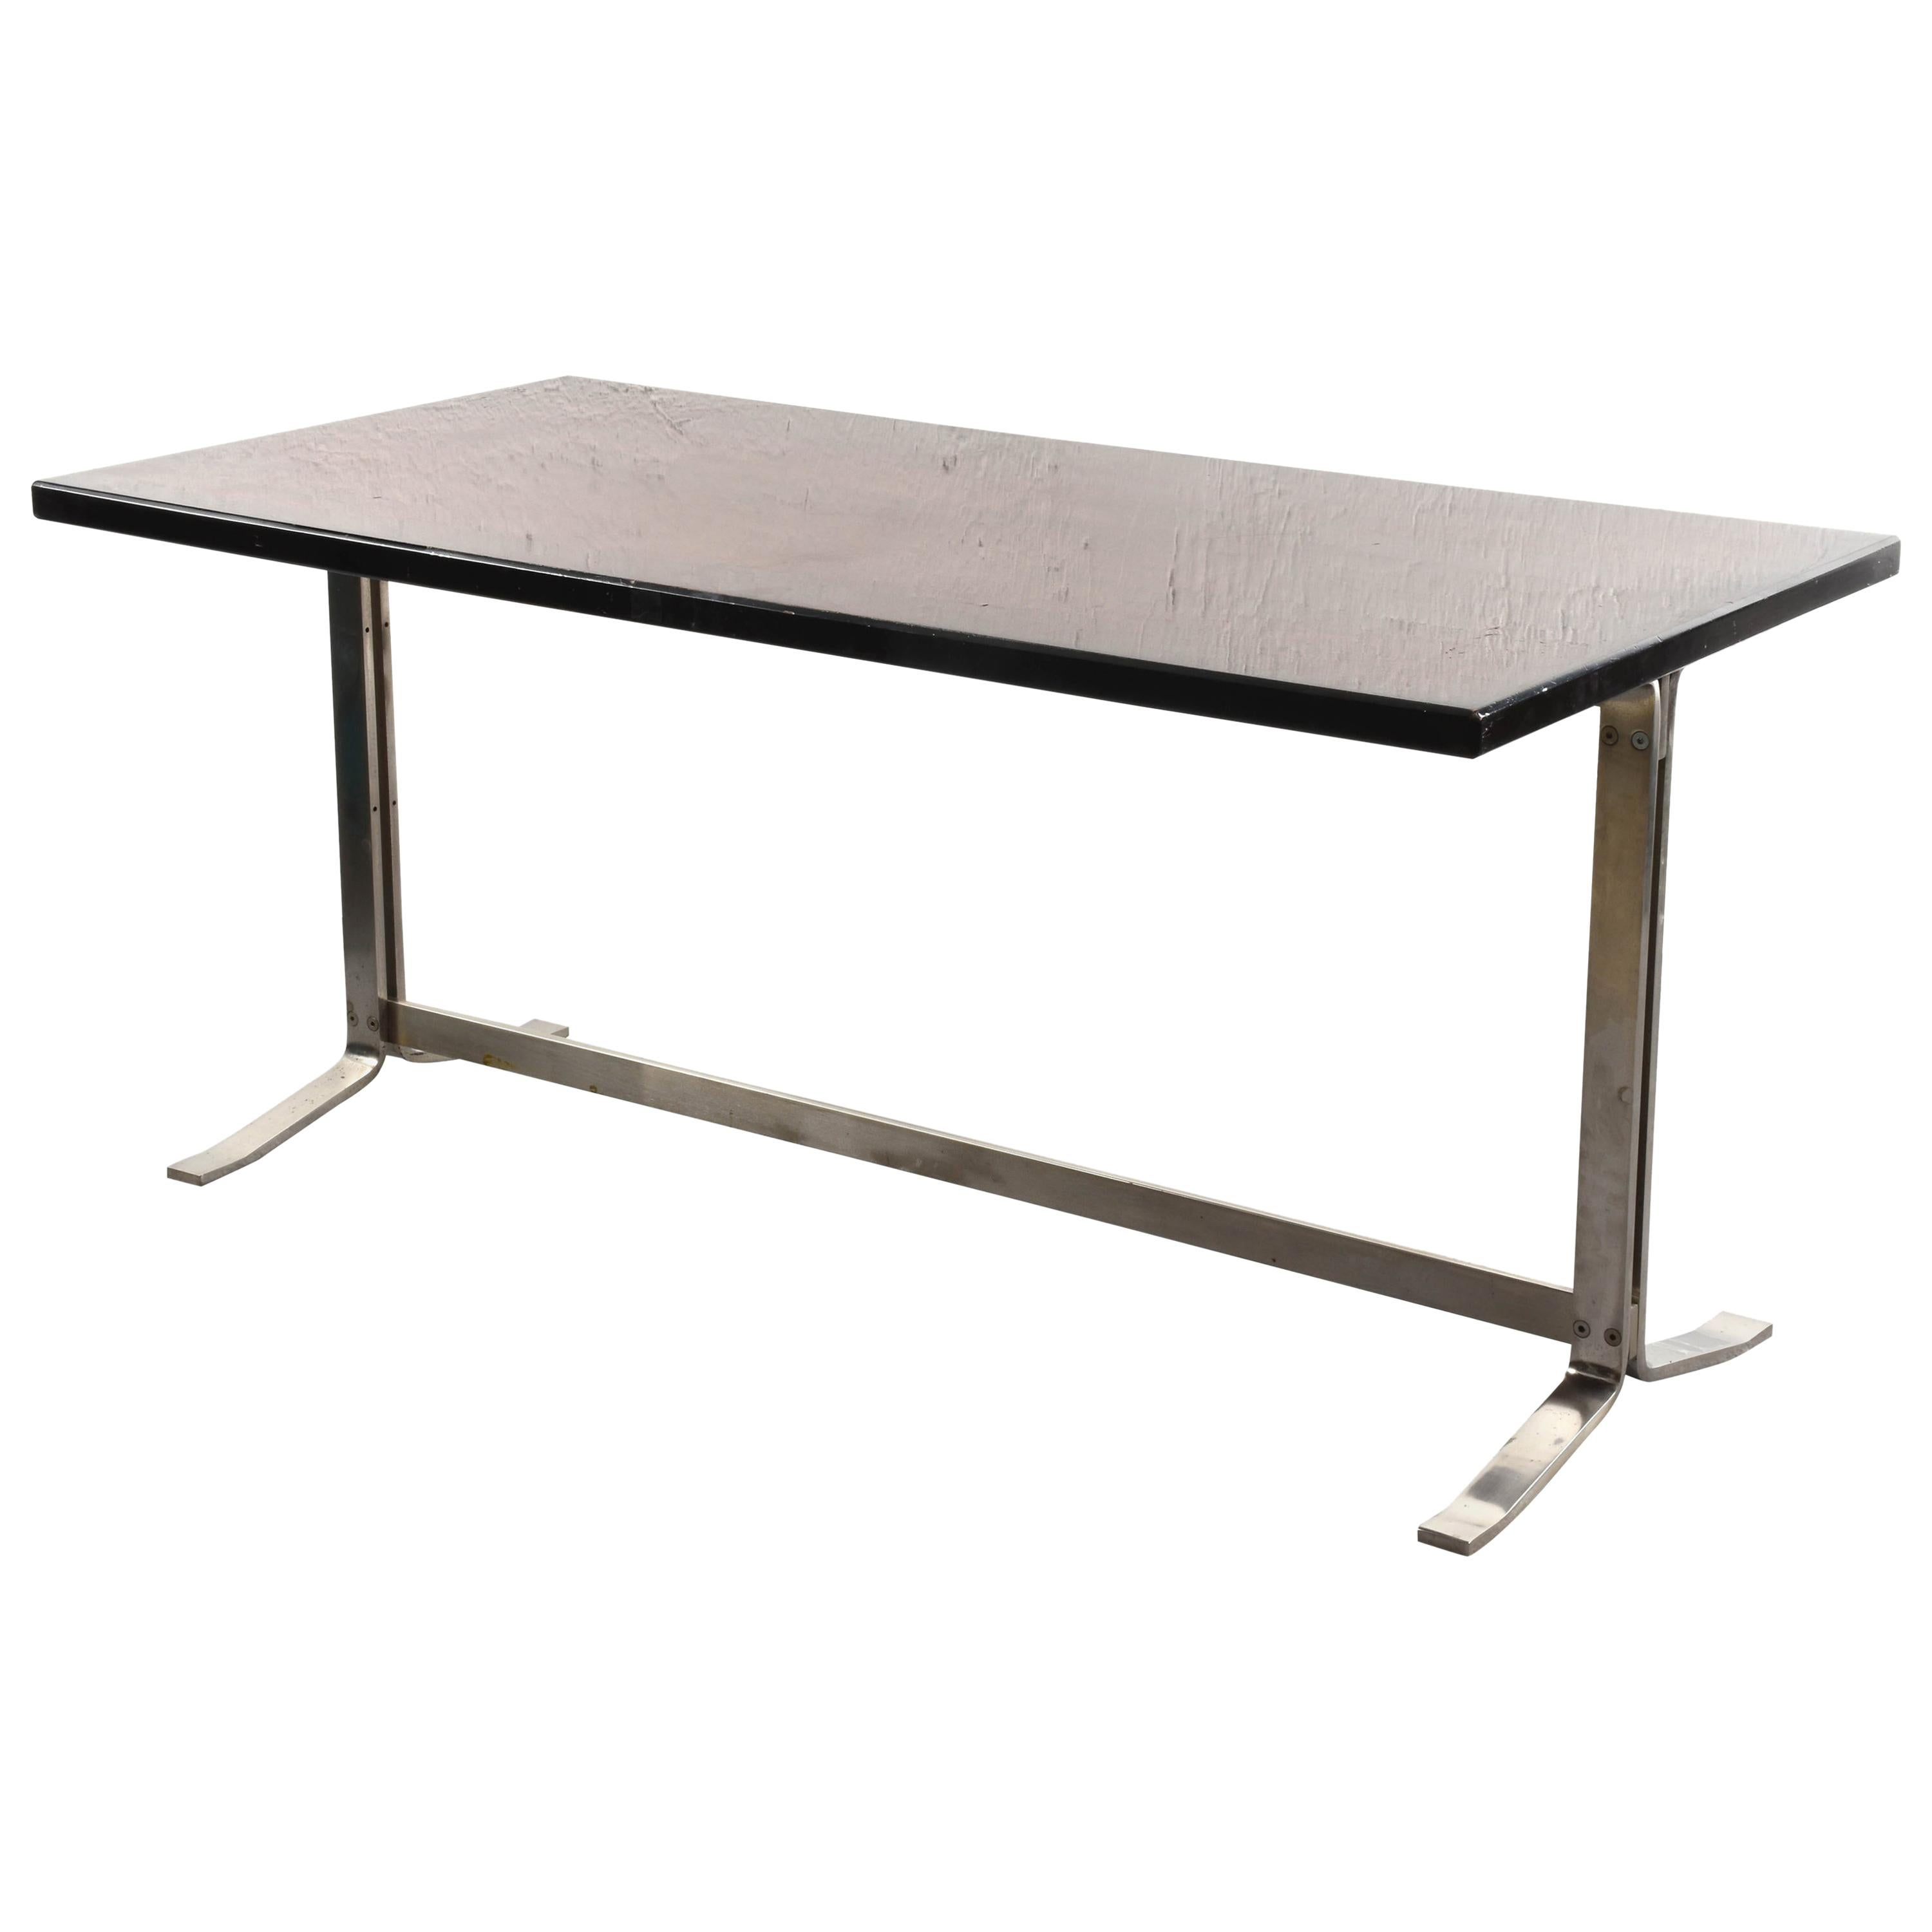 Midcentury Gianni Moscatelli Steel Writing Table for Formanova, Italy, 1960s